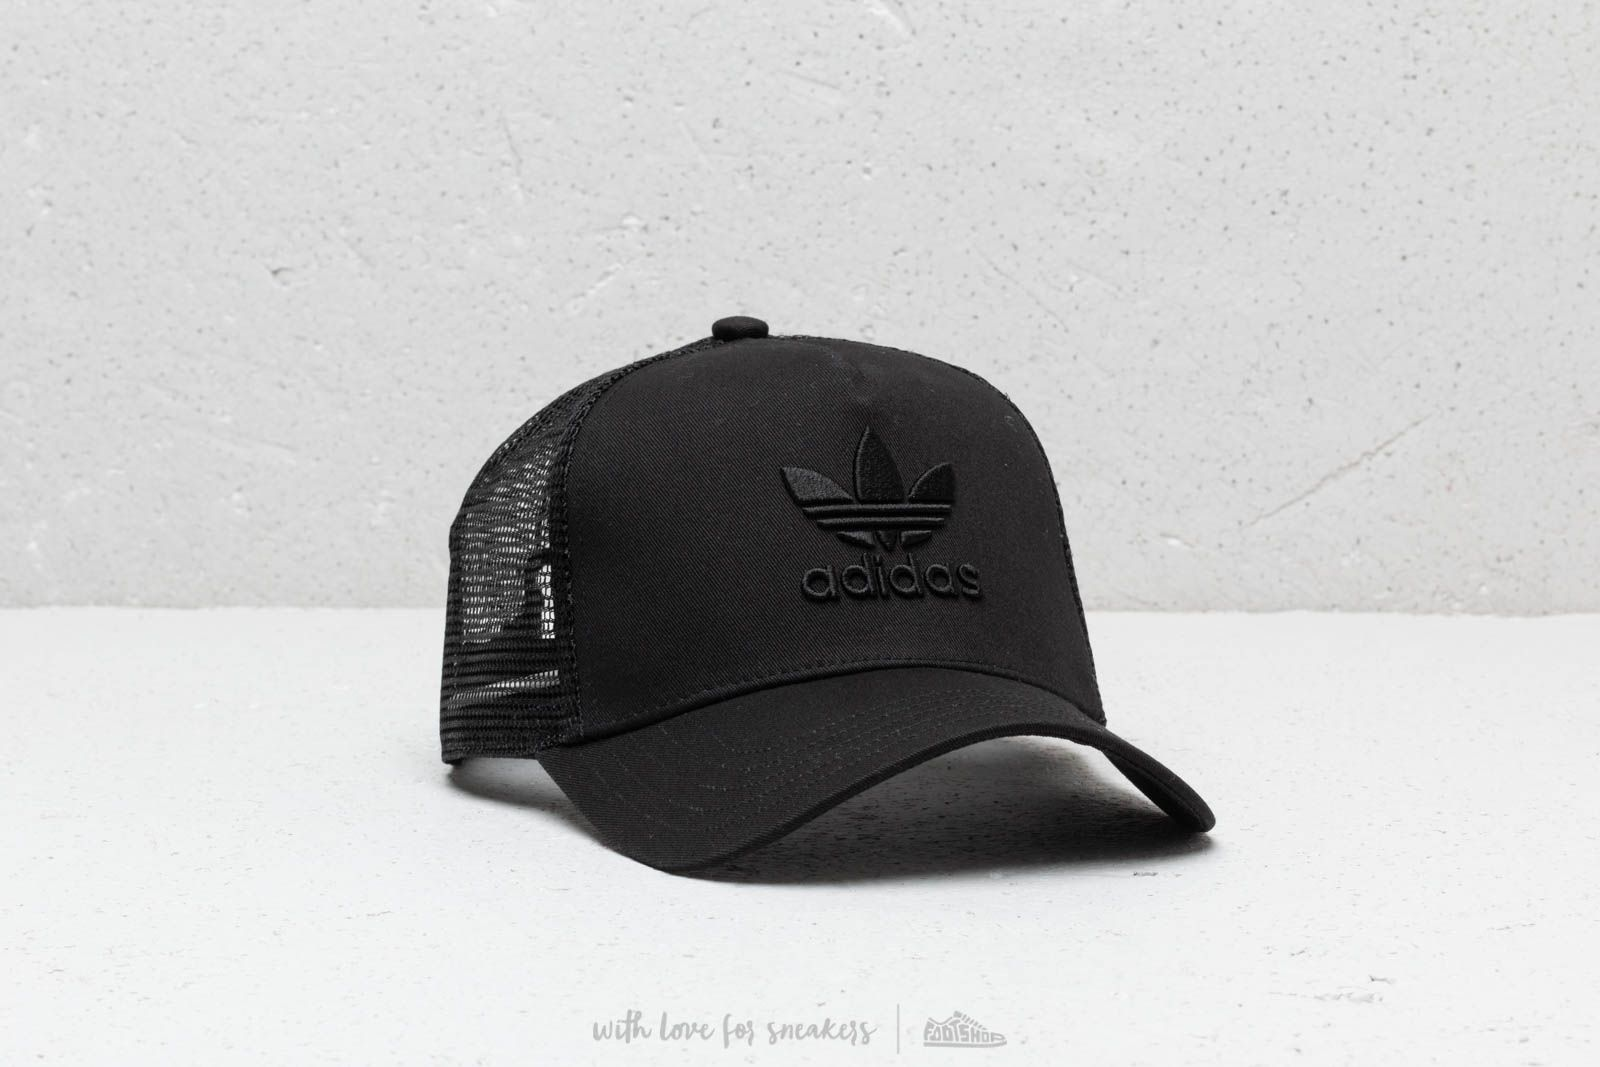 adidas Trefoil Trucker Hat Black